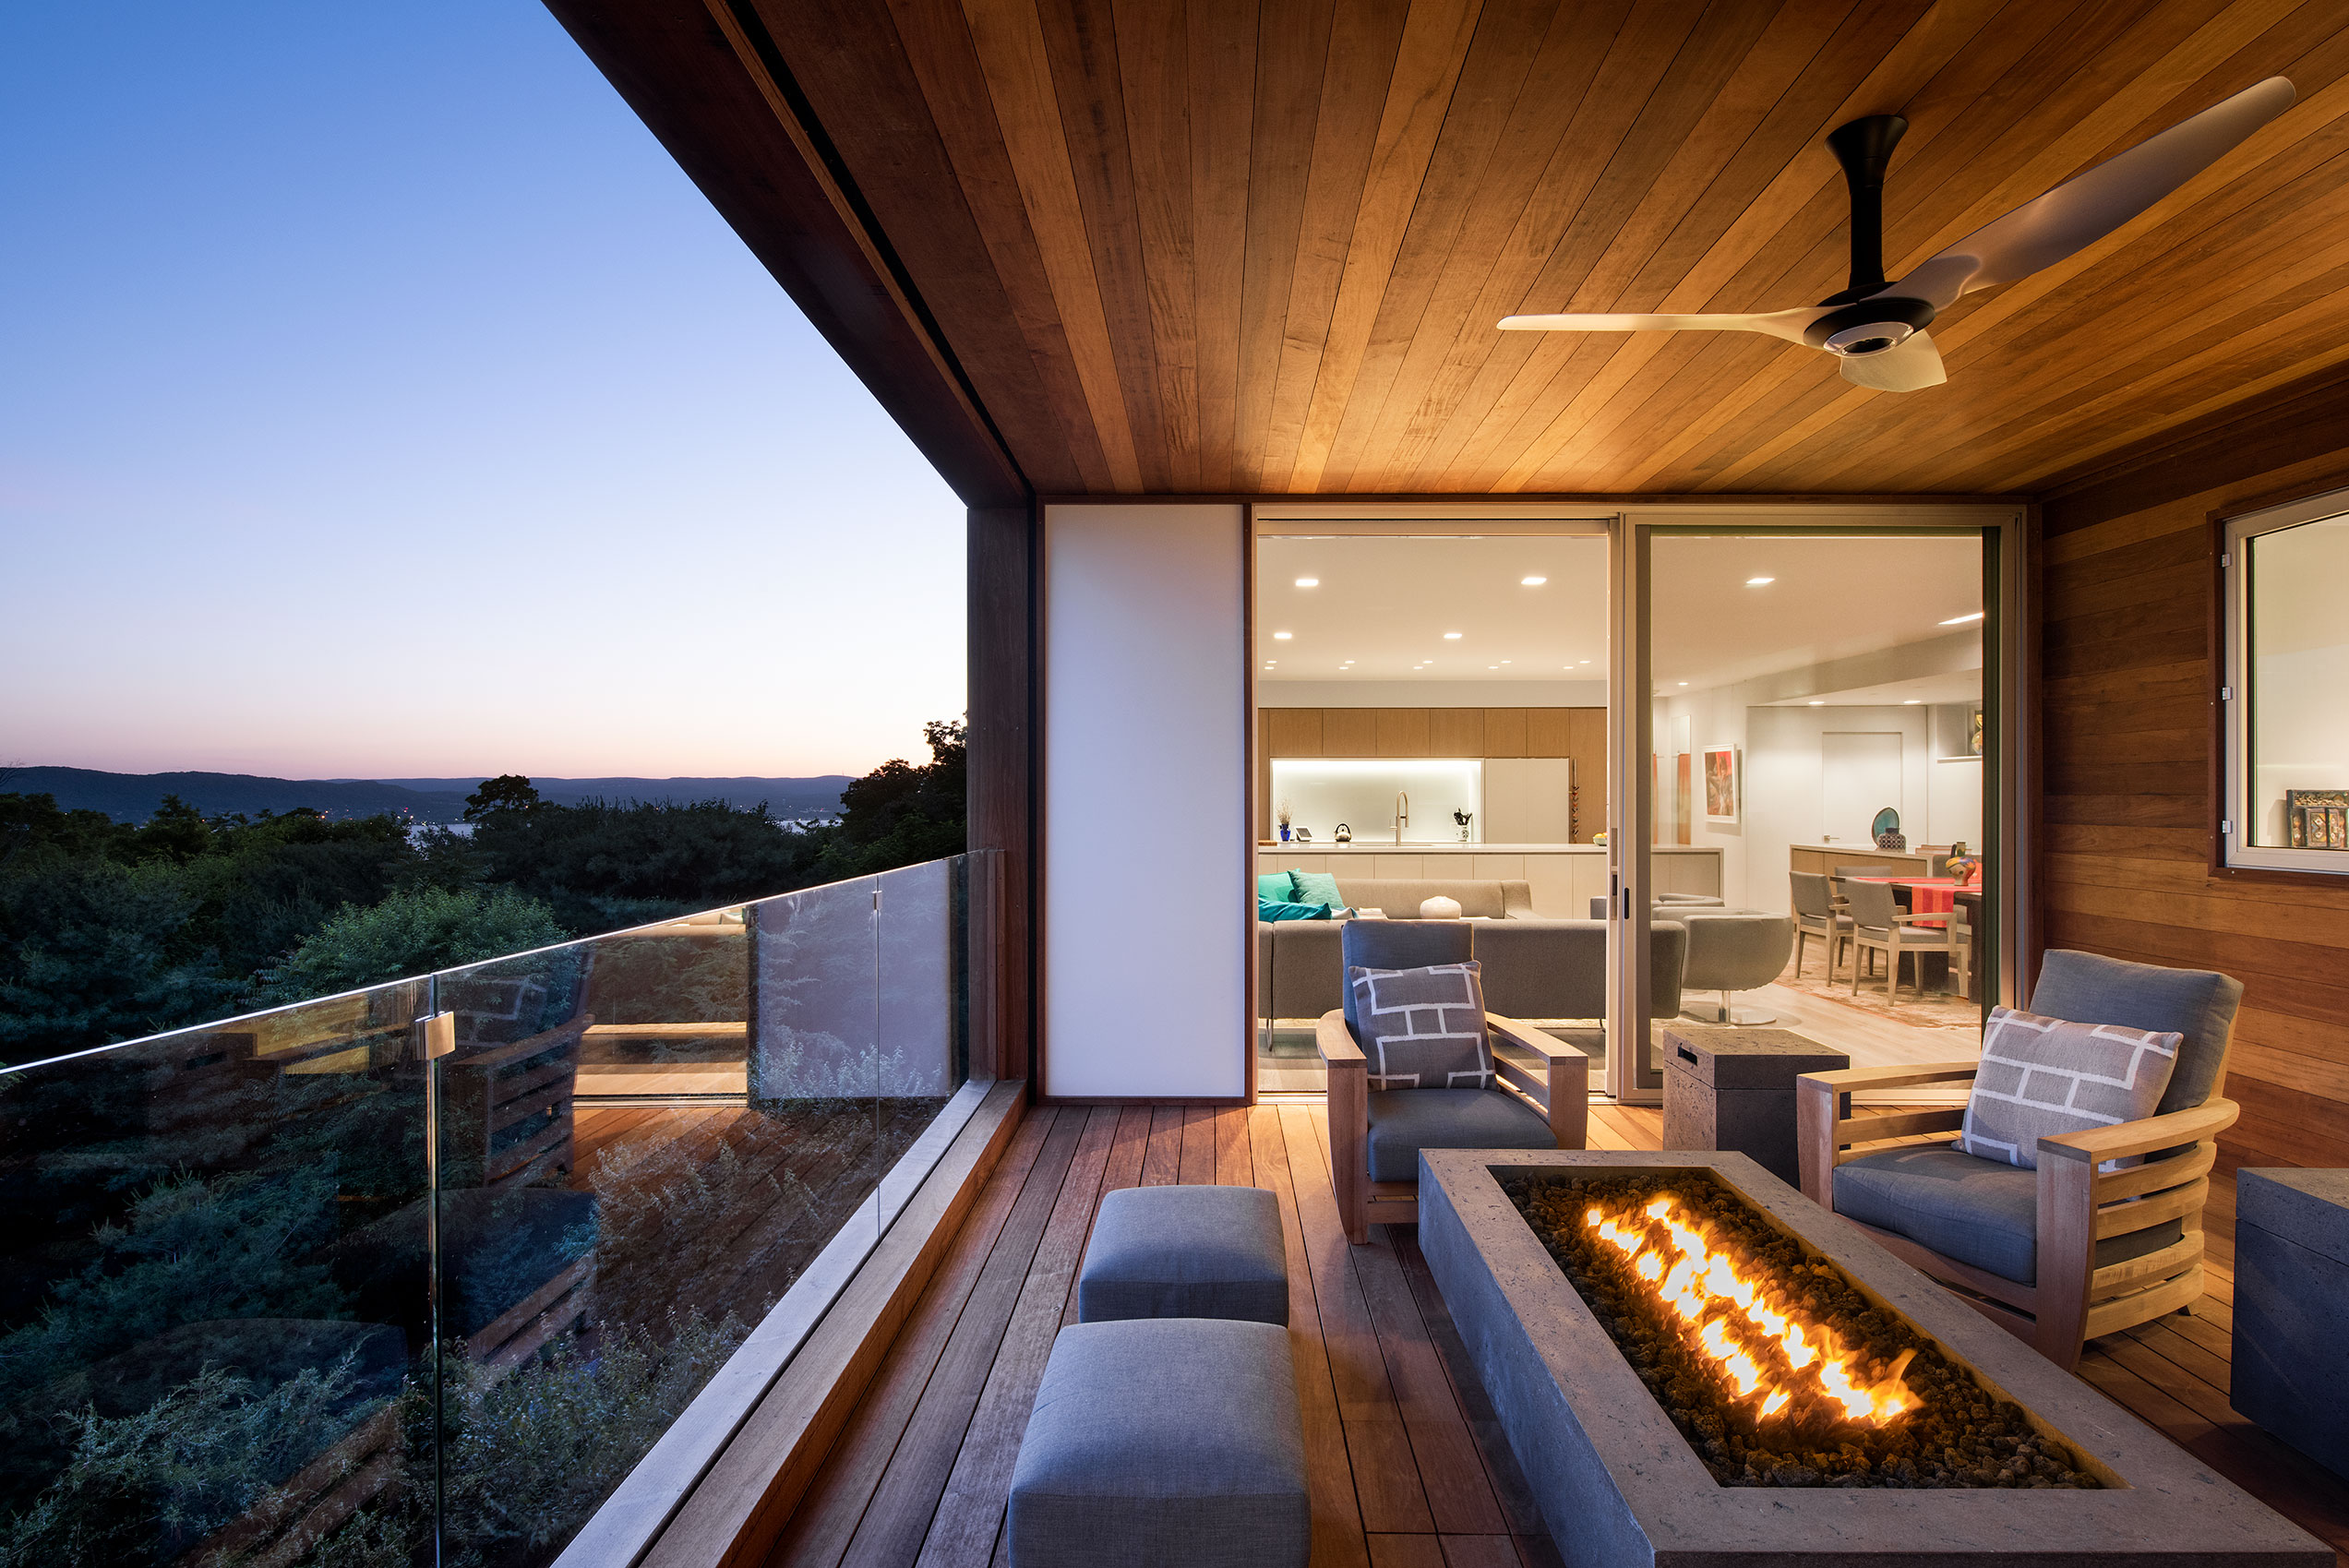 Glass fencing preserves the uninterrupted views while a concrete fire table keeps the deck cozy.